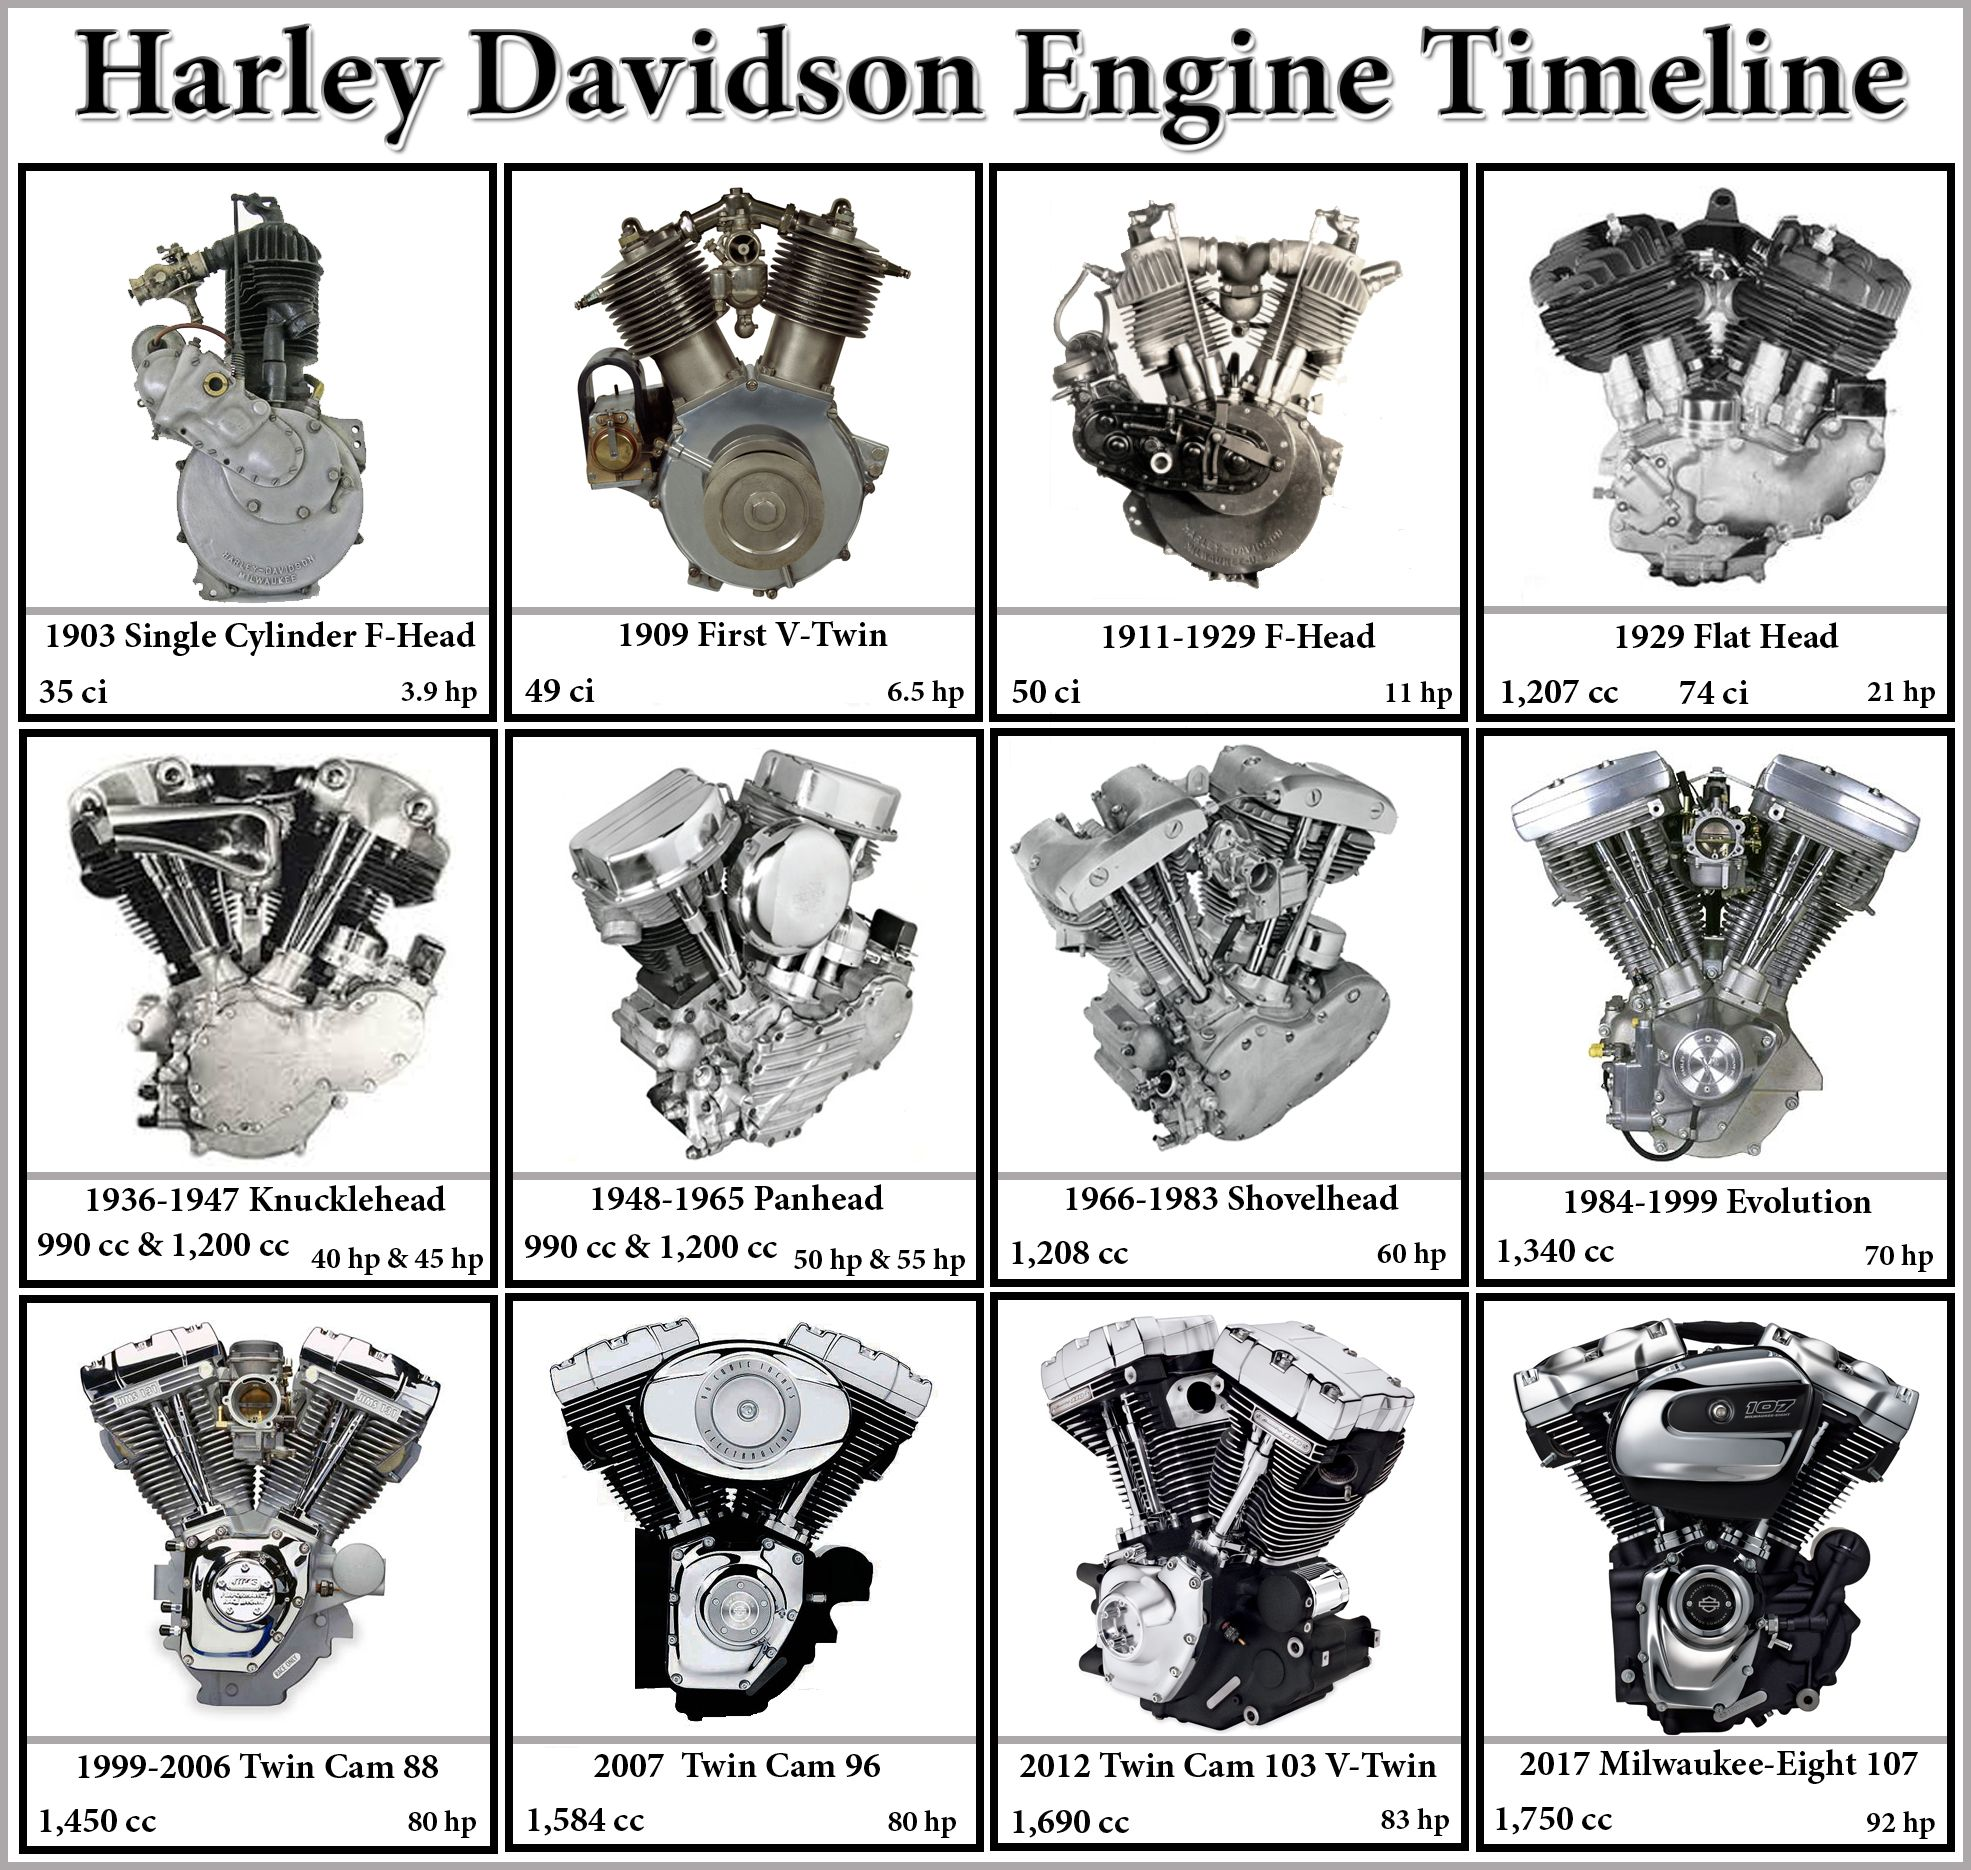 harley davidson engine timeline from 1903 to 2017